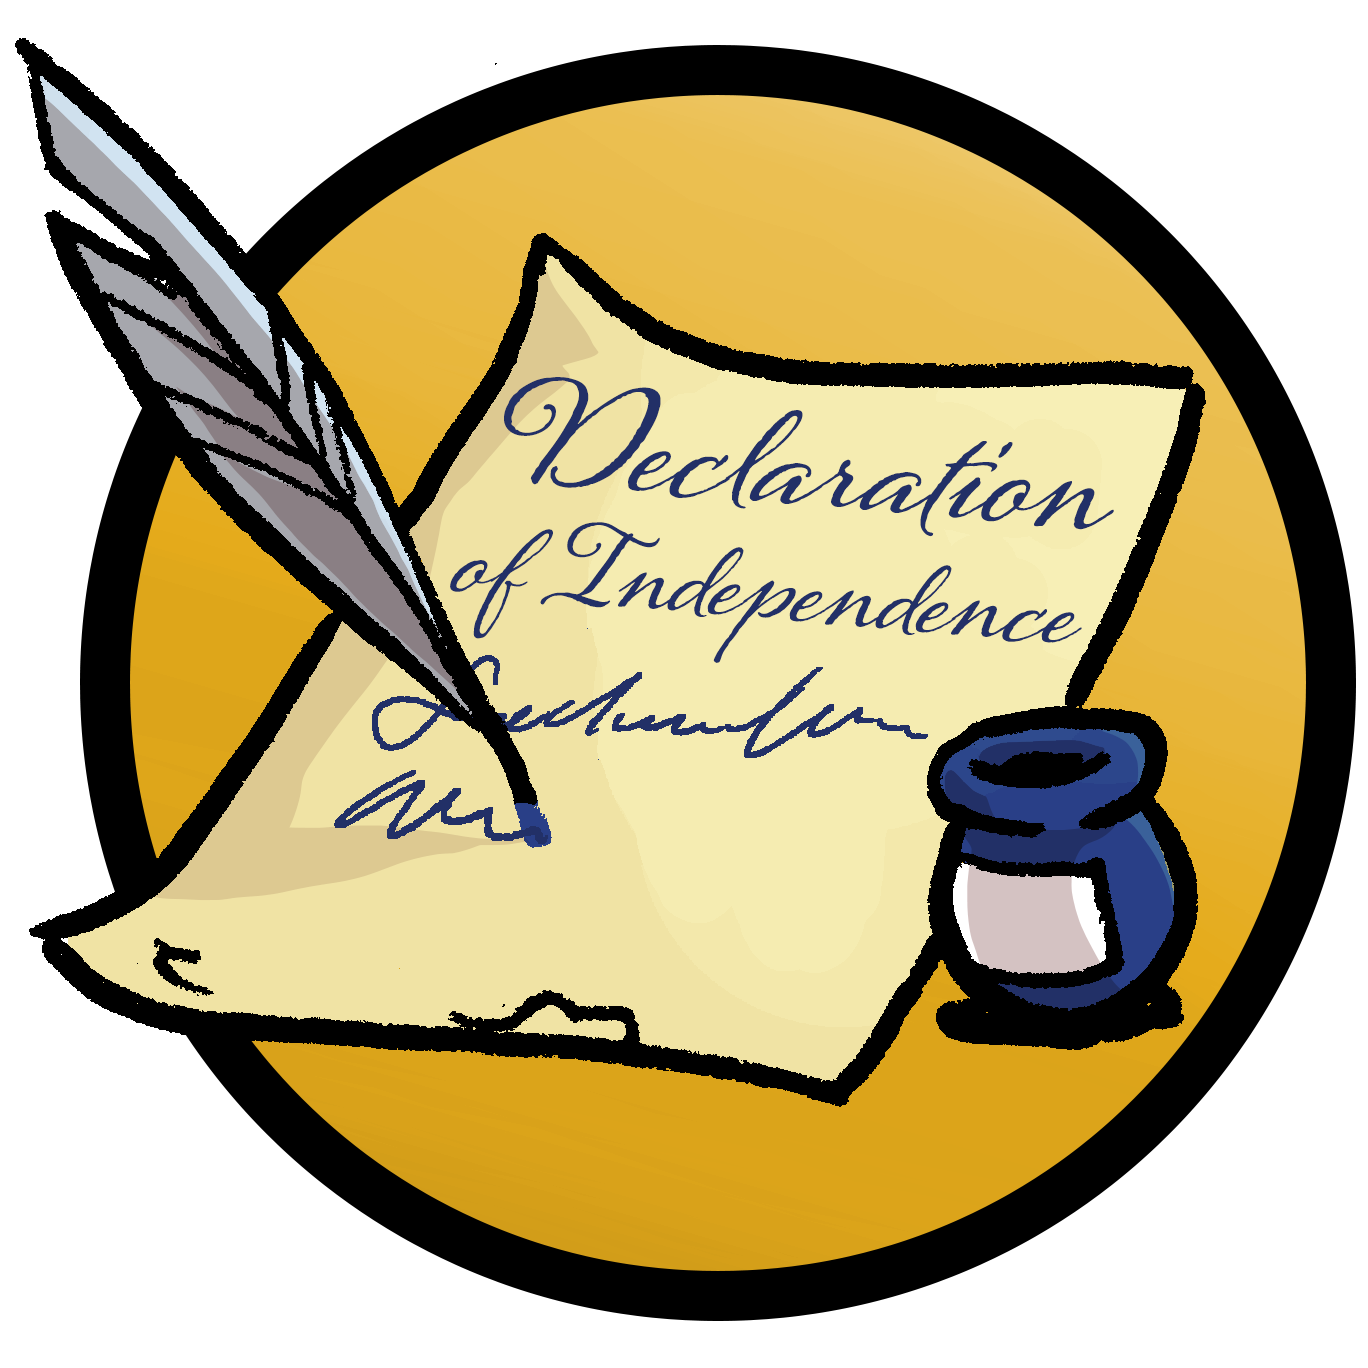 Emerald city advanced camp. History clipart declaration independence